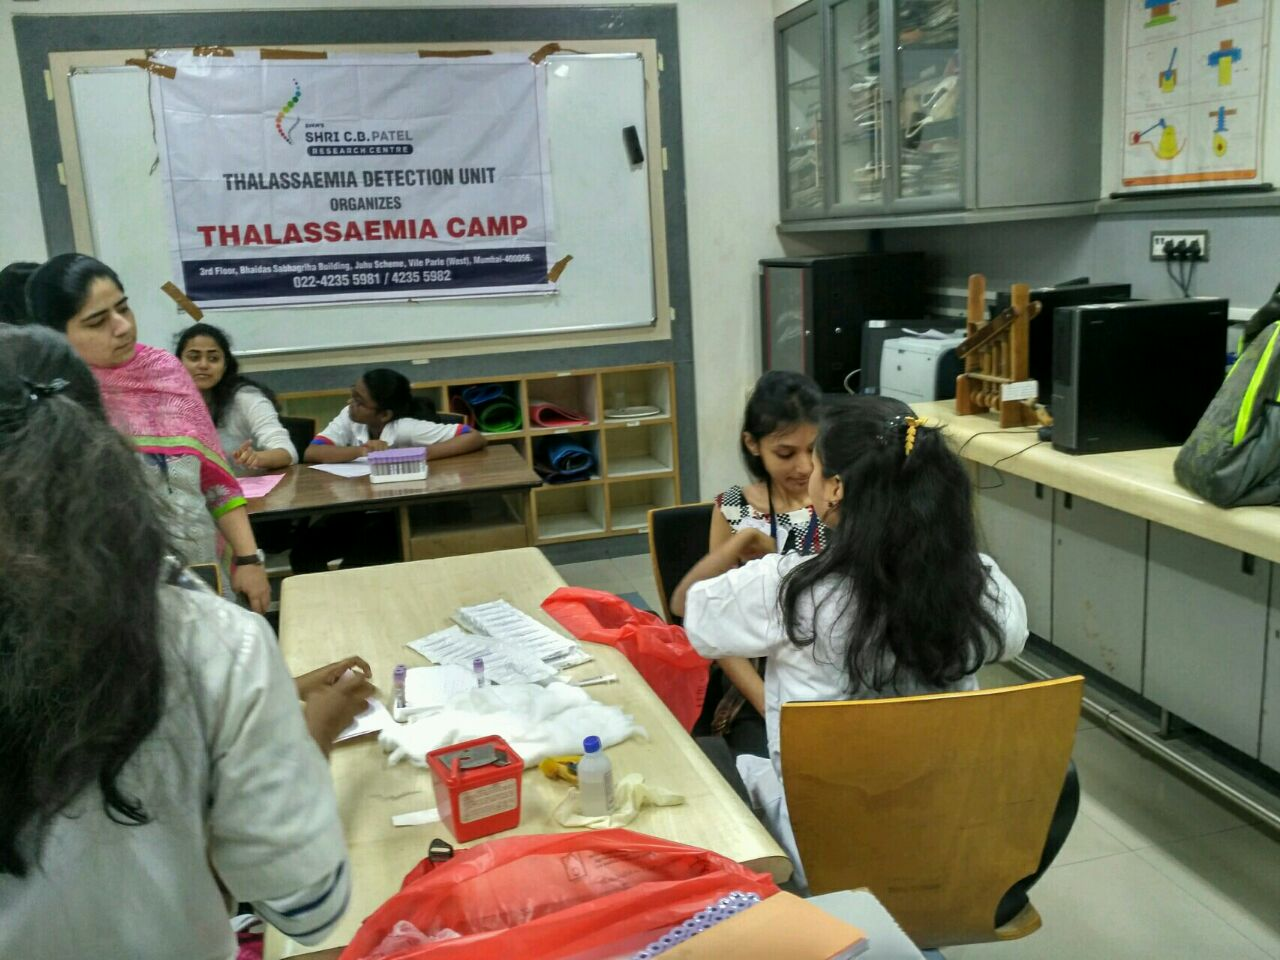 Thalassemia Detection Camp at D J Sanghavi College of Engineering, Vile Parle West, Mumbai